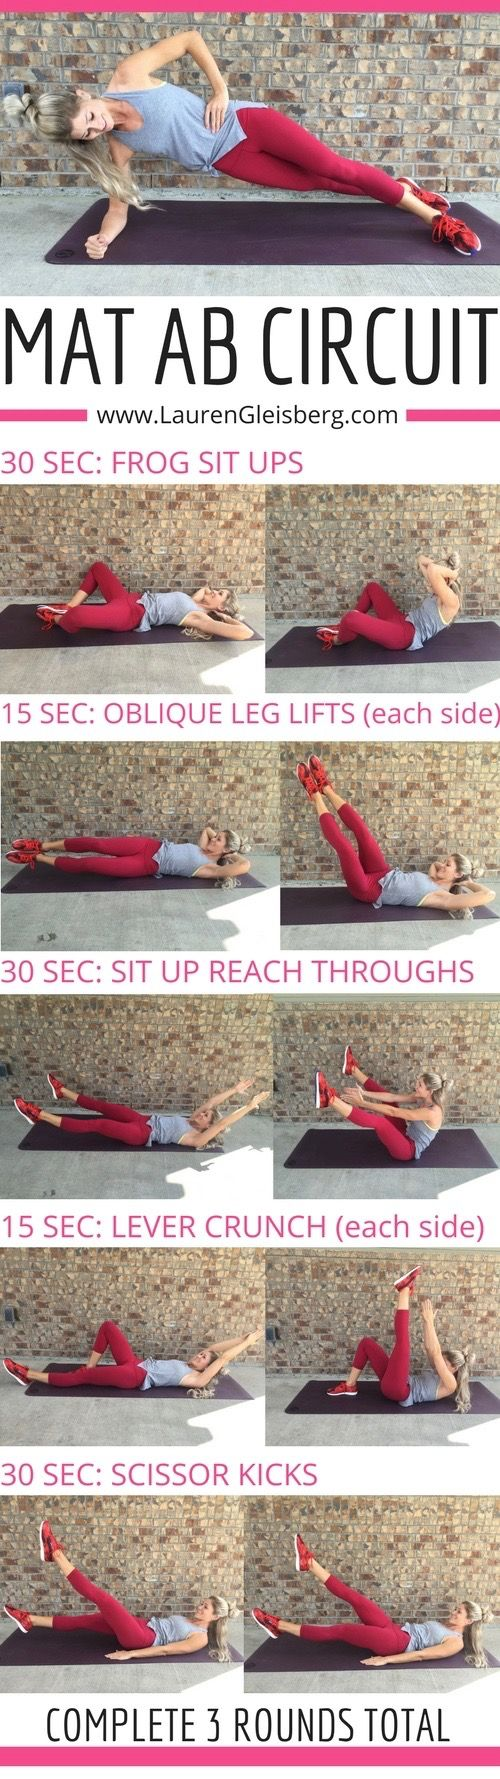 8354a5c83120e 23 Intense Ab Workouts That Will Help You Shed Belly Fat Quickly ...